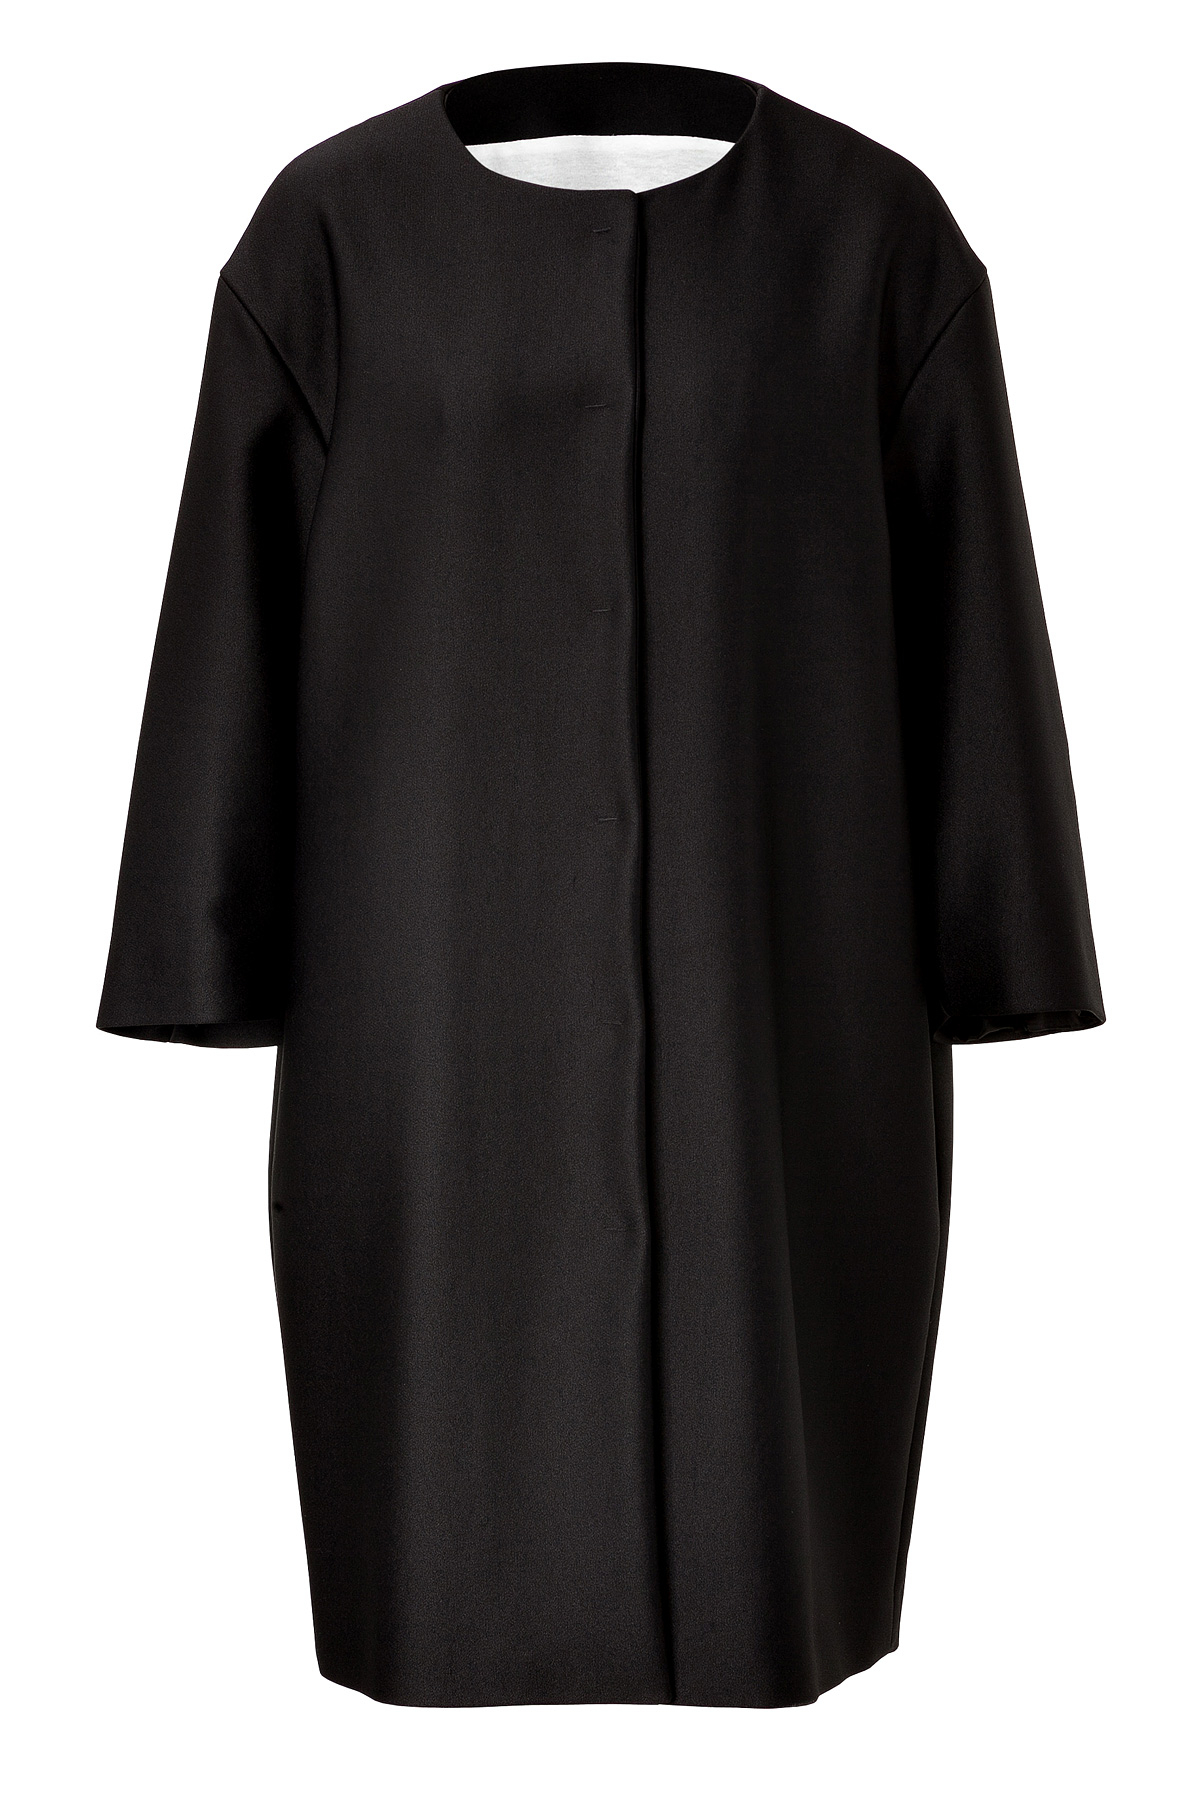 Moschino Collarless Coat - Black in Black | Lyst